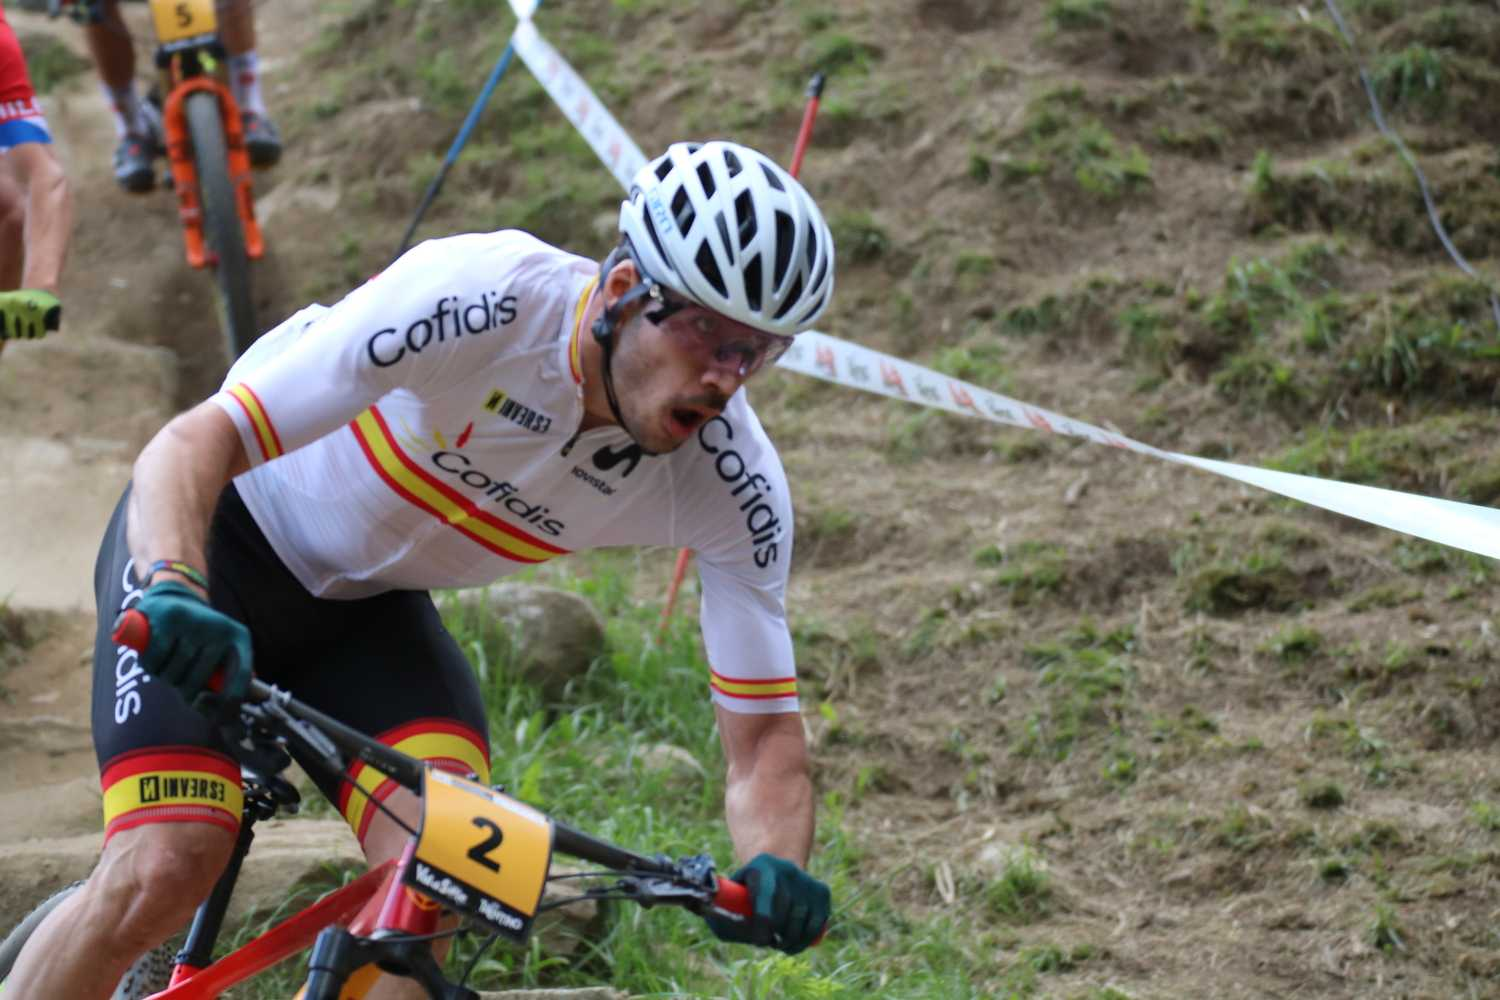 #TeampESPciclismo - Mundial XCO BTT-DHI Val di Sole 2021